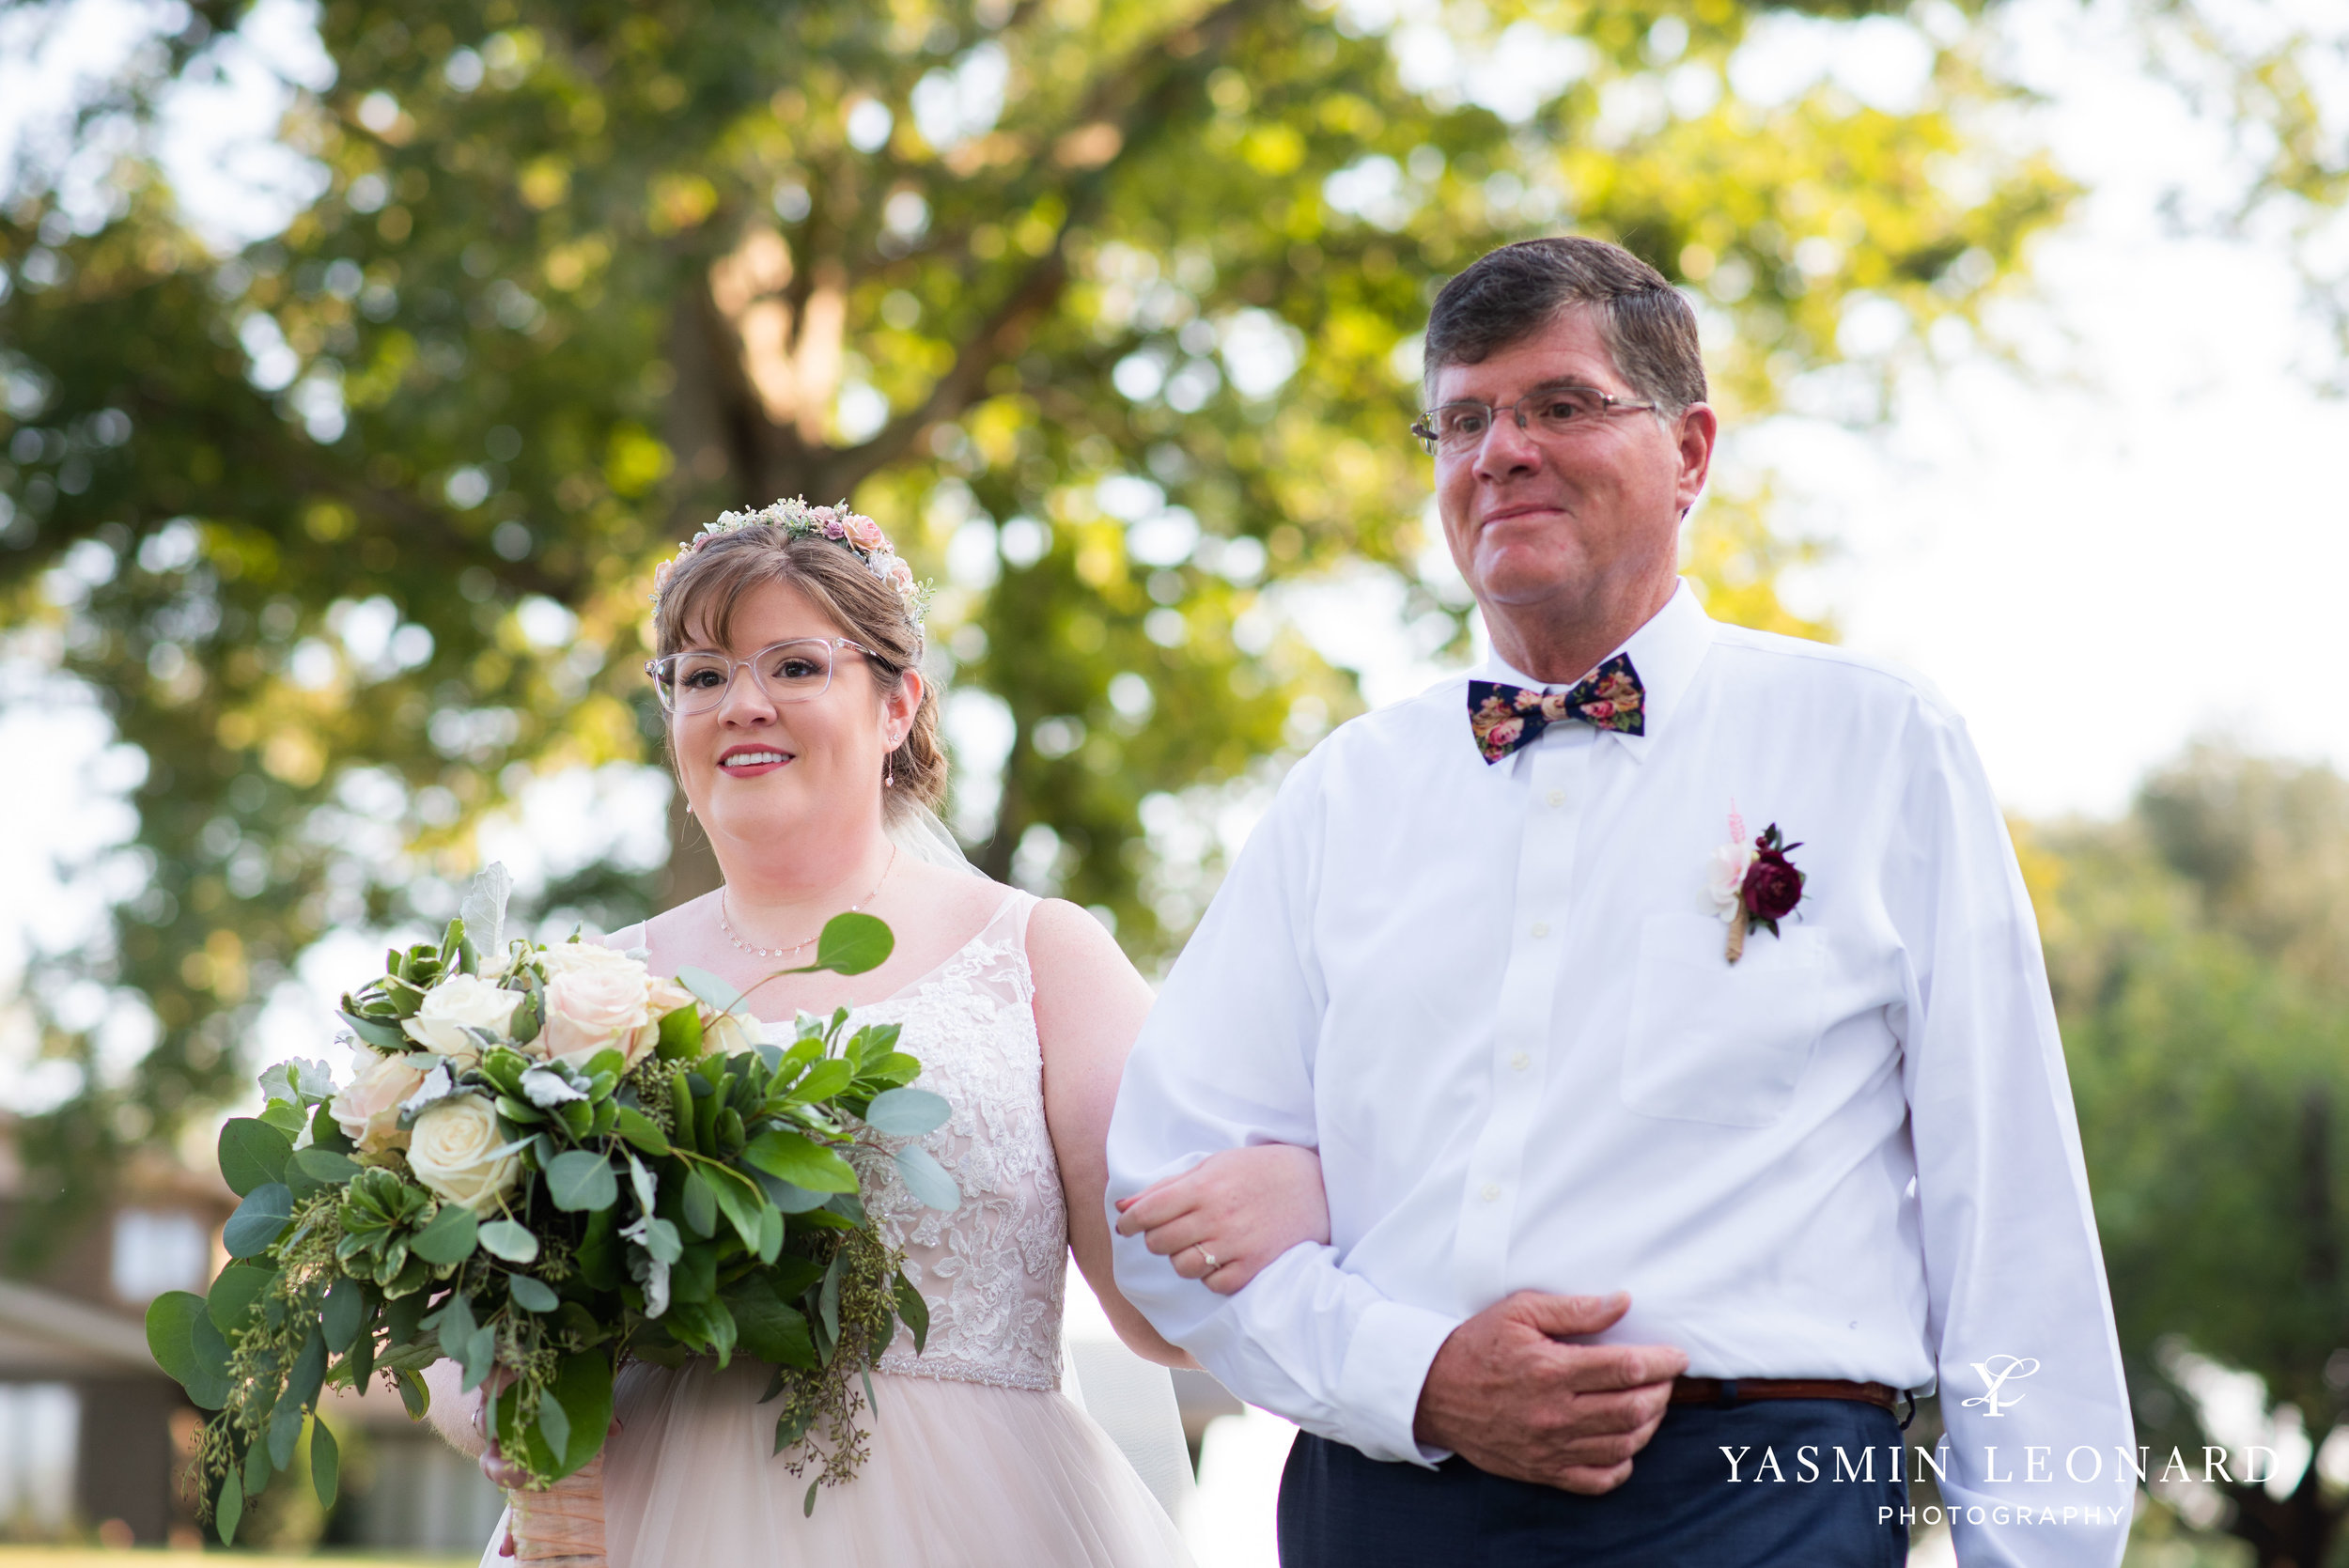 Hannah and David - l'abri at Linwood - NC Barn Weddings - Guys and Girls on Bride's Side - How to incorporate guys with bridesmaids - navy fall wedding - high point photographer - nc wedding venues - triad weddings-24.jpg